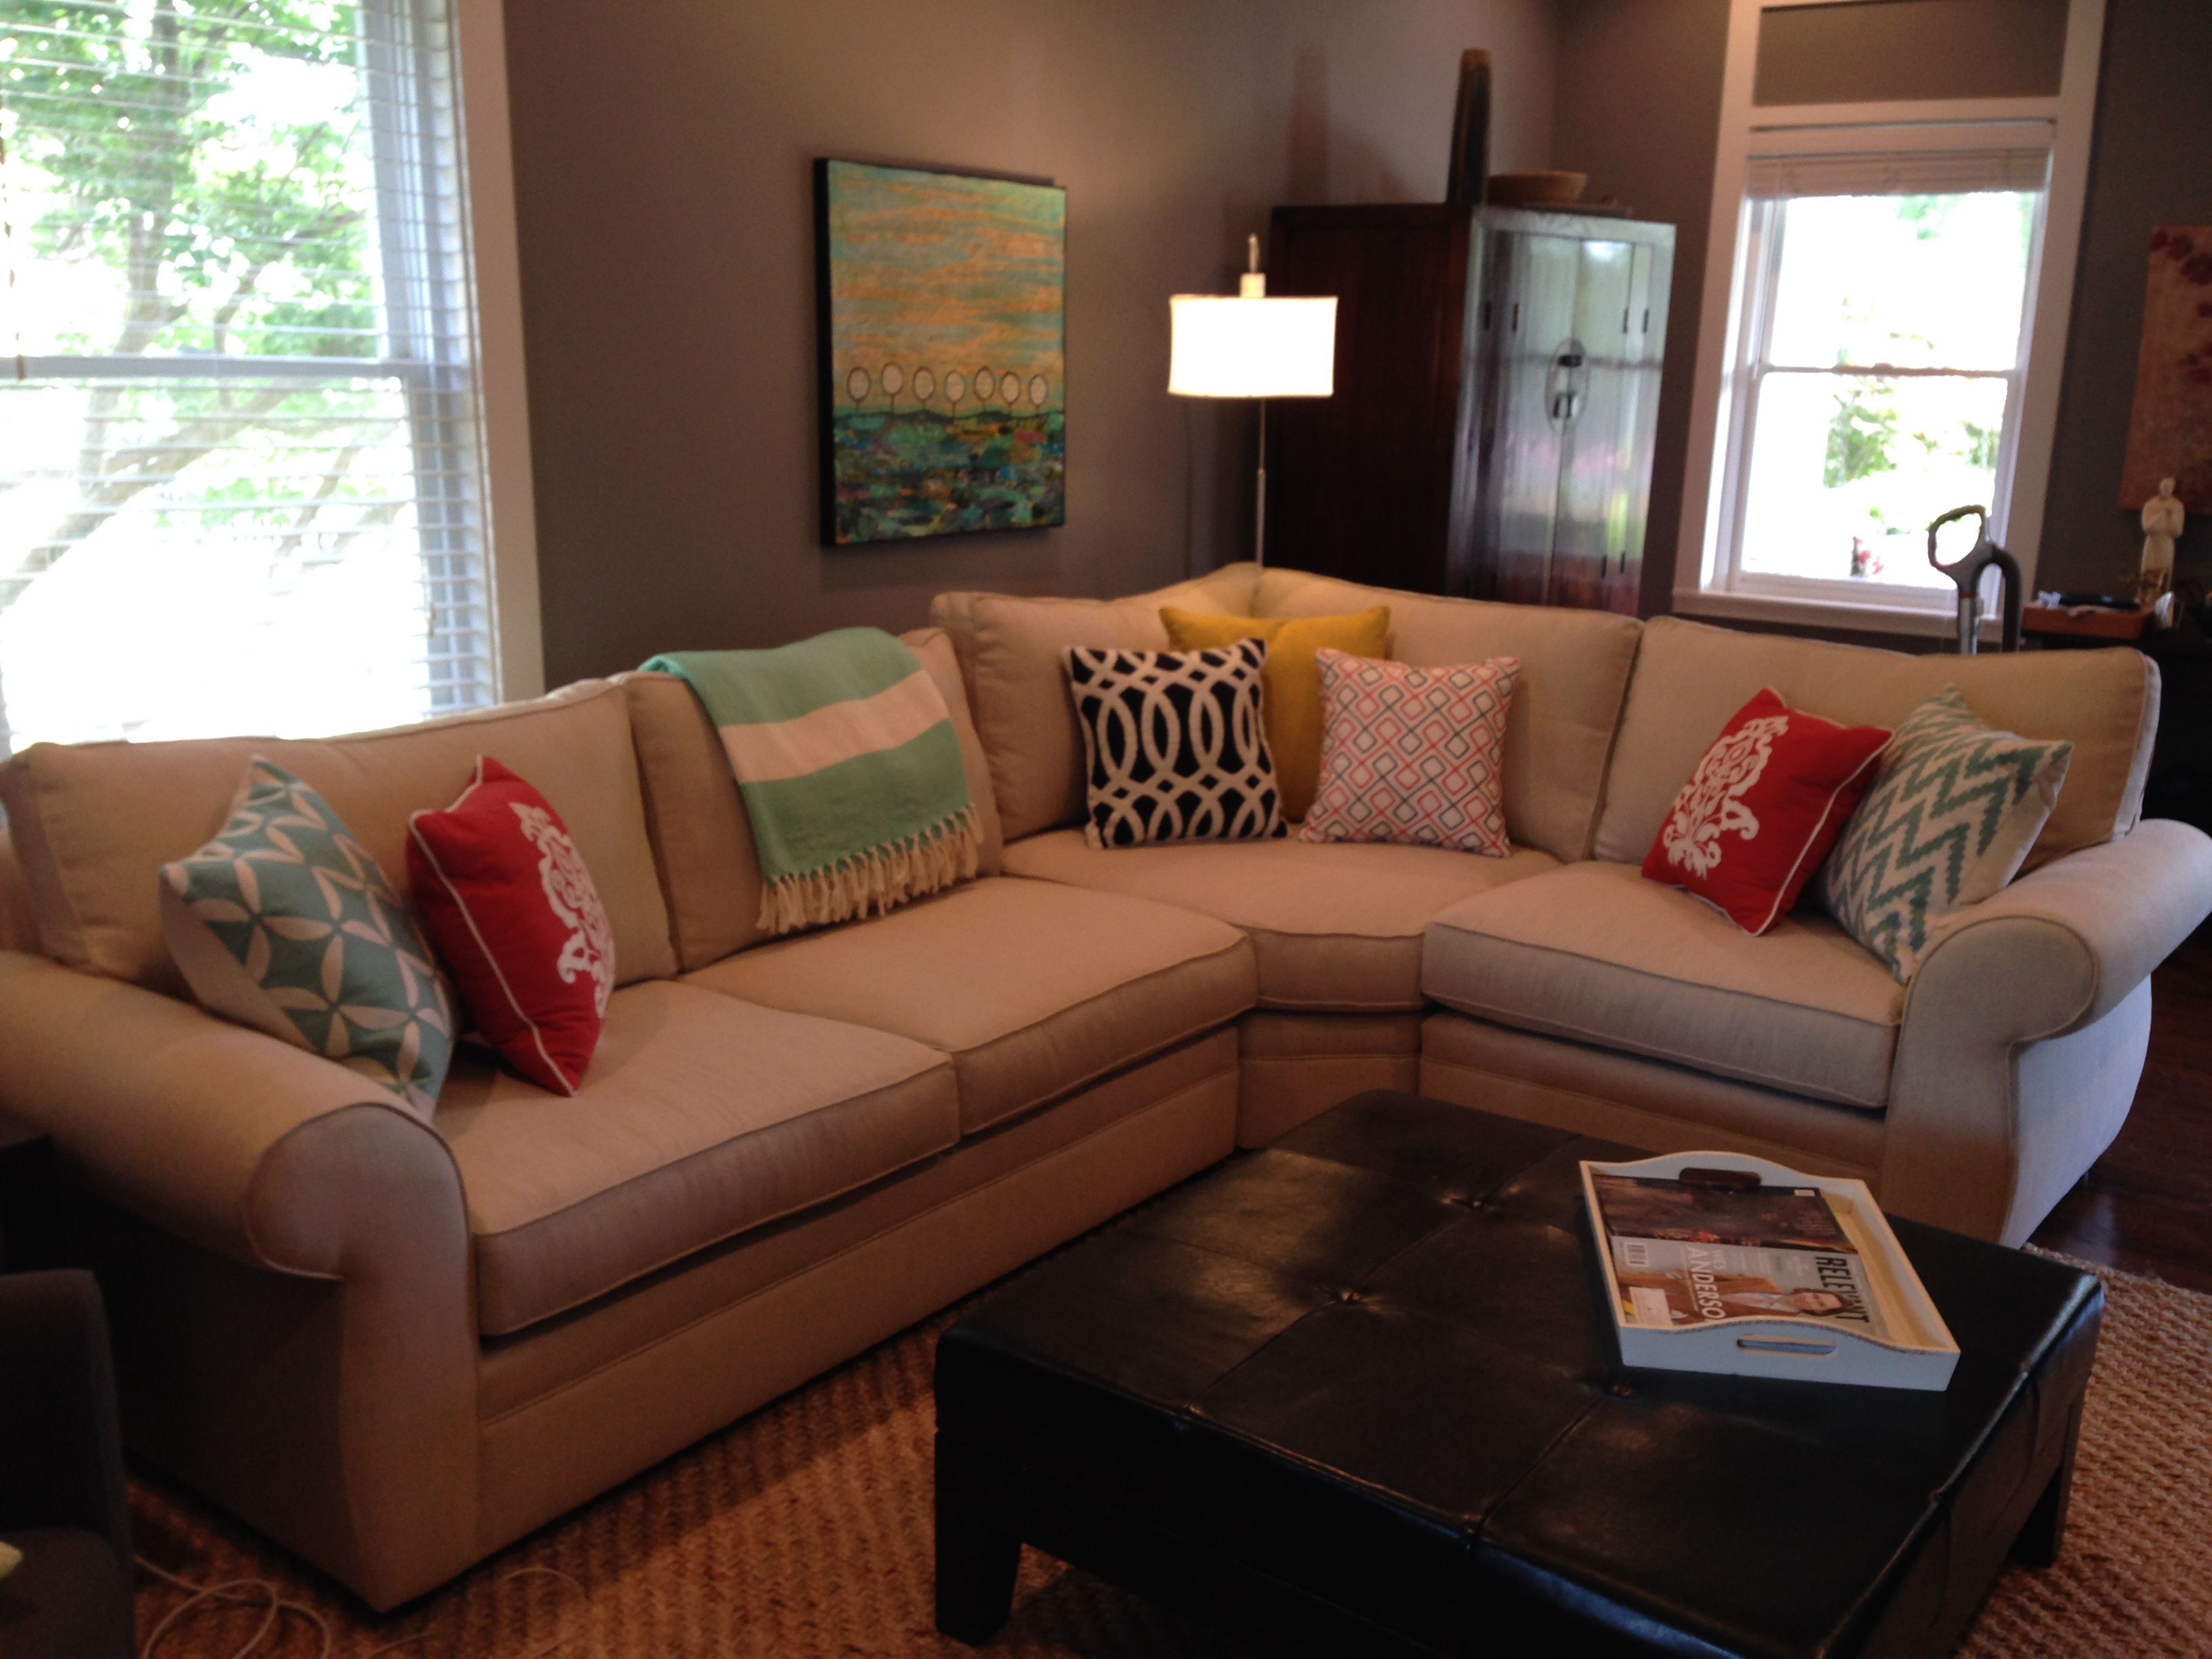 Our New Pearce Sectional And Itu0027s Throw Pillow Friends. So Thrilled With  Our New Set